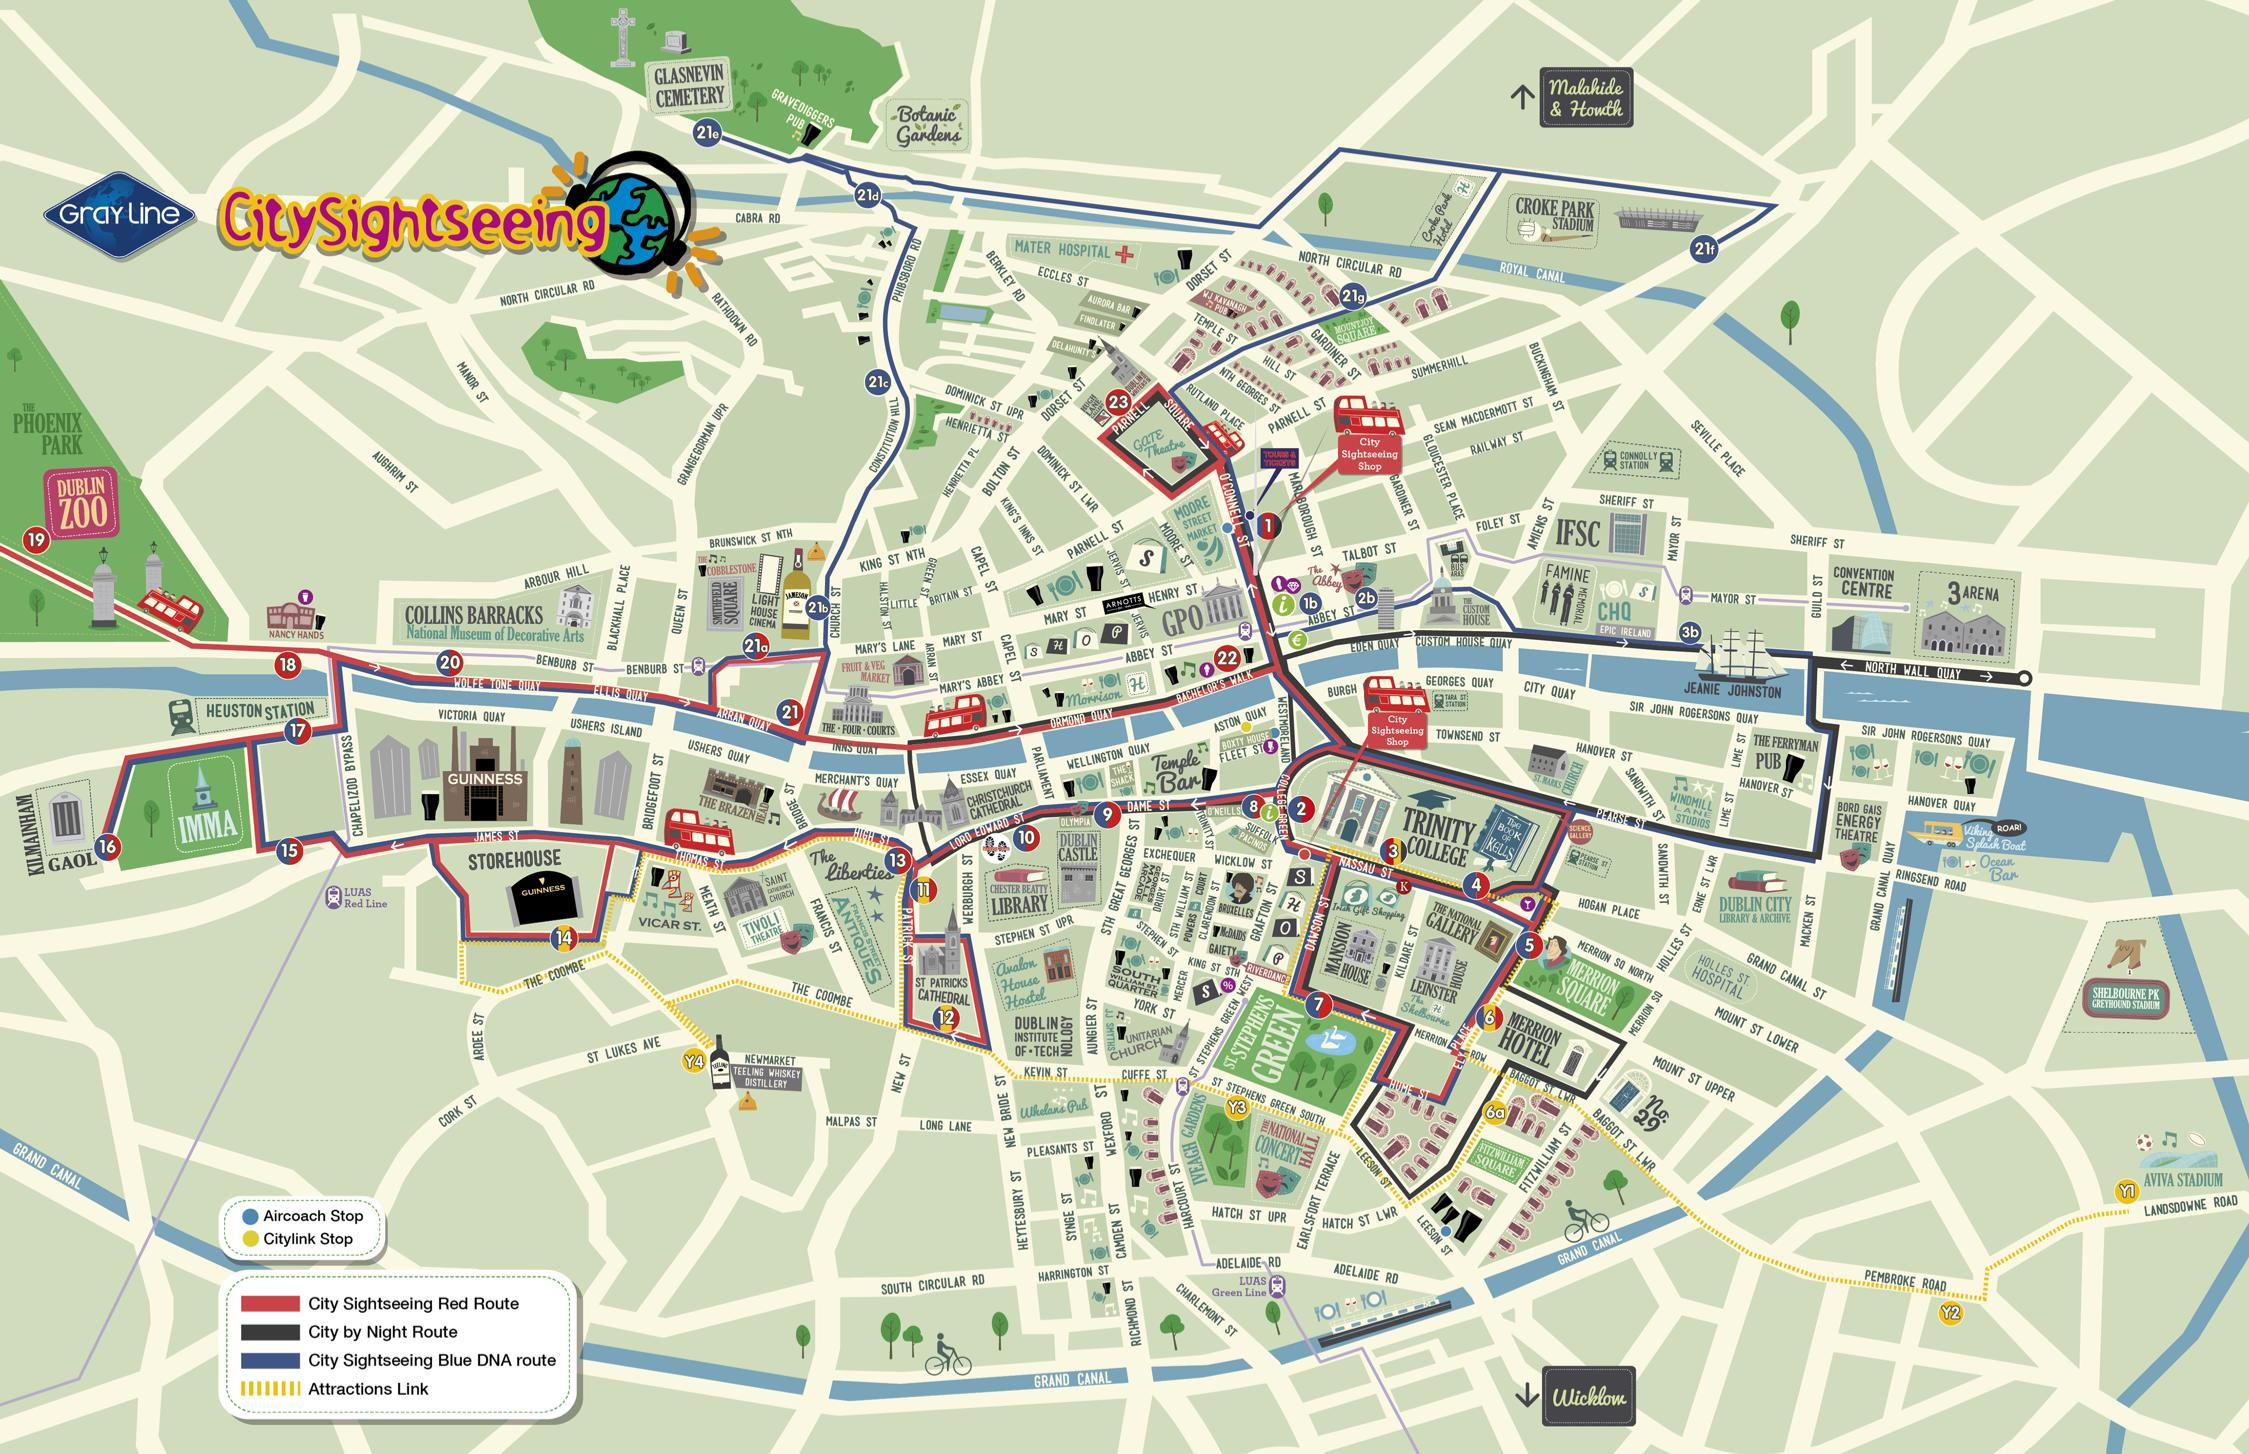 Dublin City Sightseeing HopOn HopOff 1 or 2Day Bus Tour in